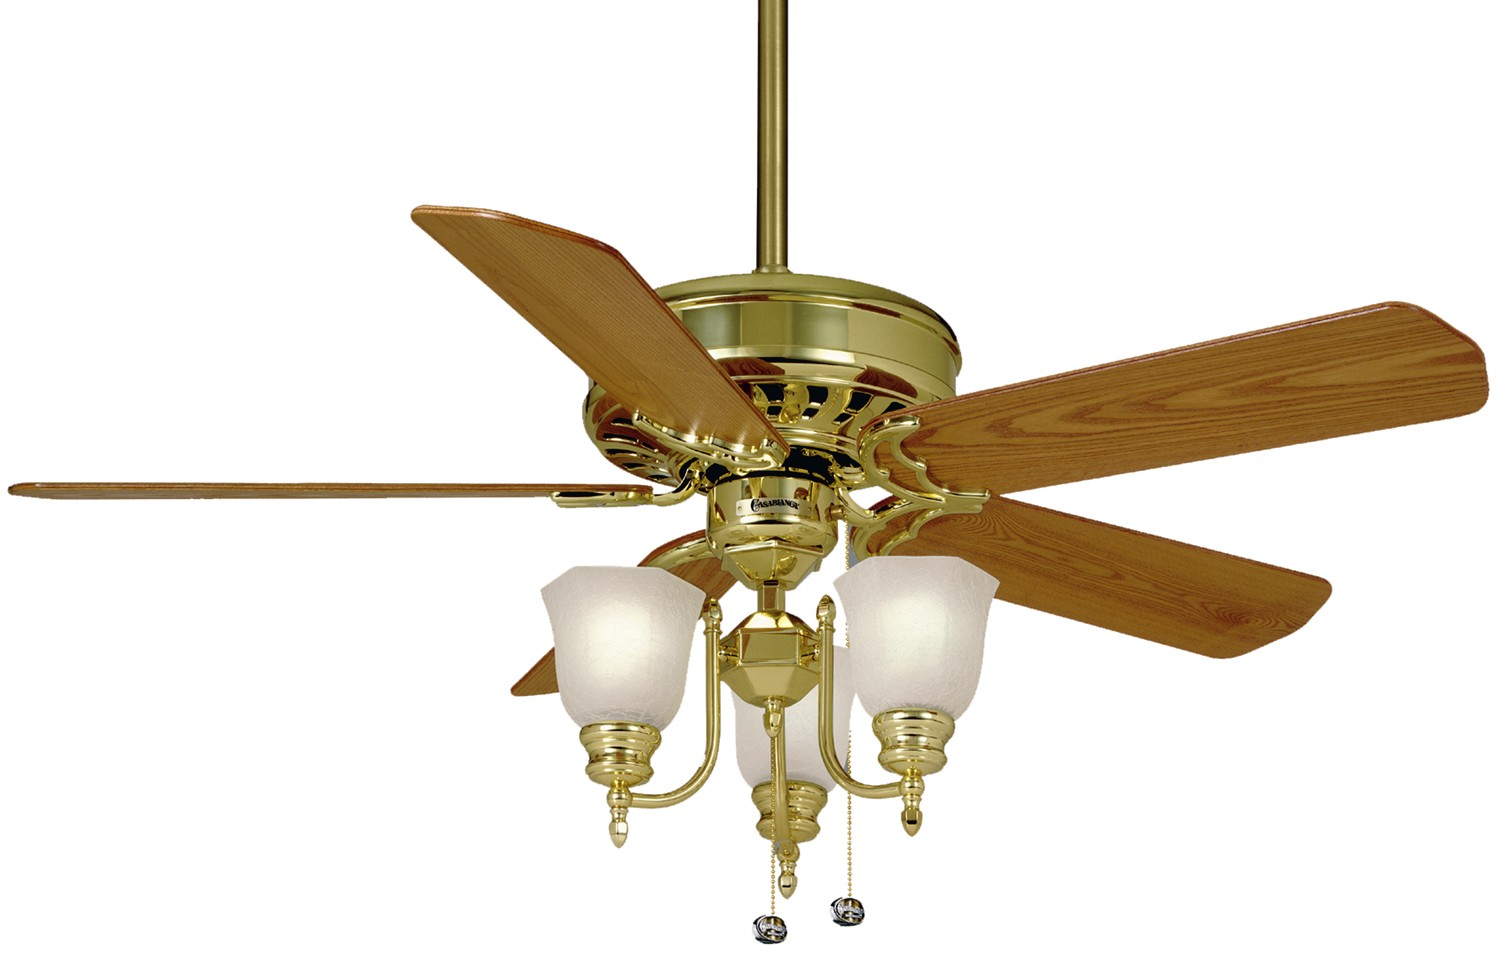 Installing a Ceiling Fan | DoItYourself.com